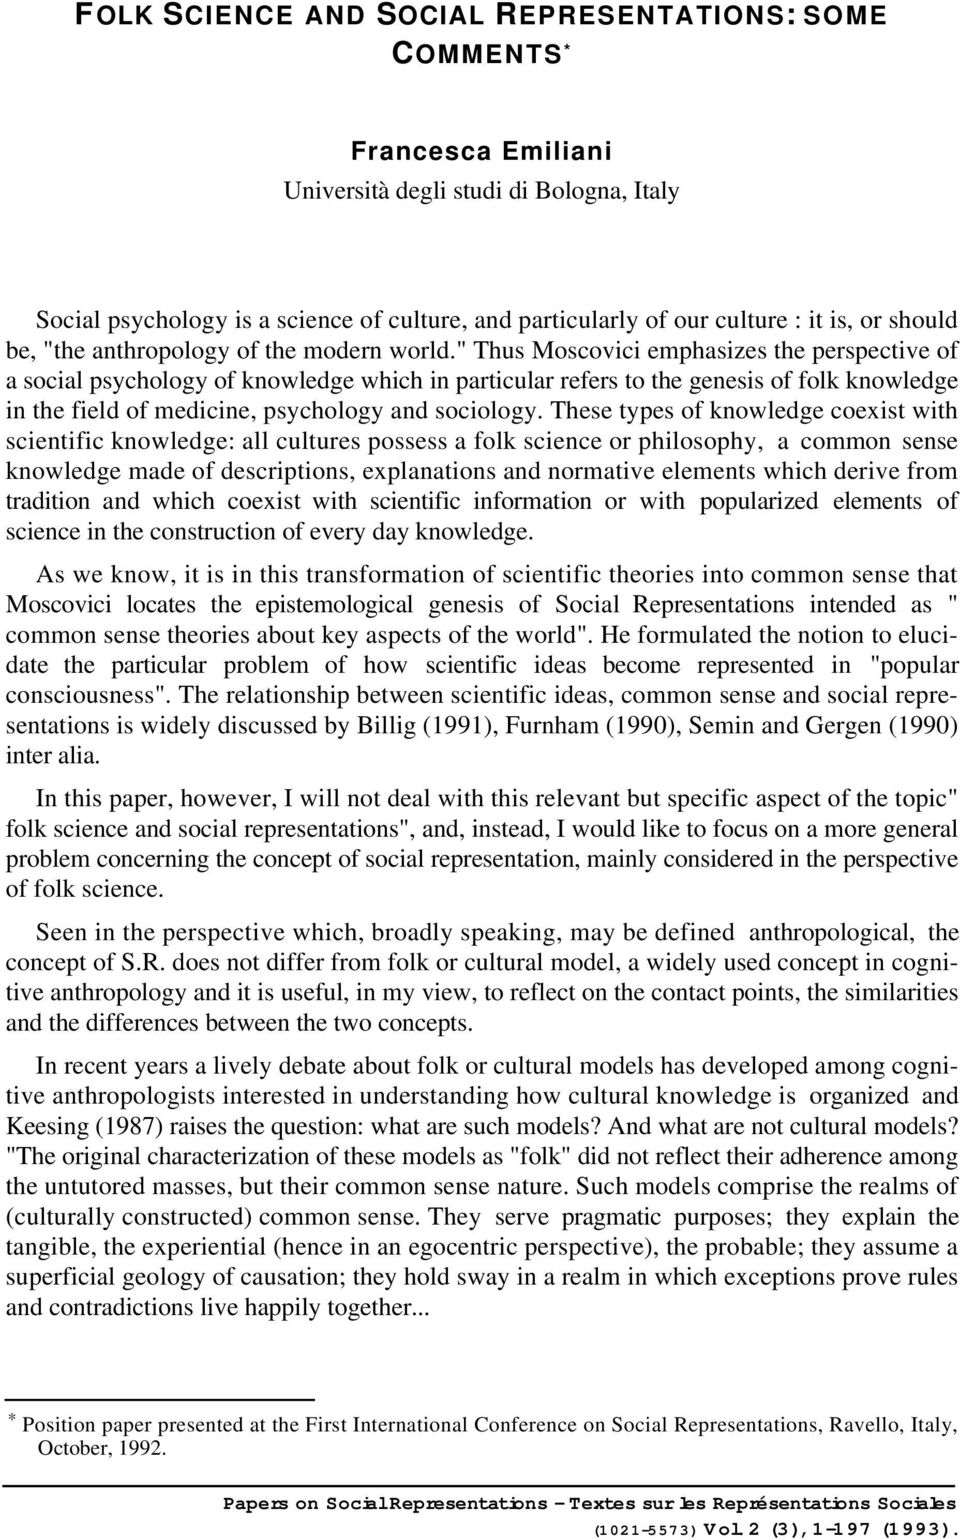 """ Thus Moscovici emphasizes the perspective of a social psychology of knowledge which in particular refers to the genesis of folk knowledge in the field of medicine, psychology and sociology."